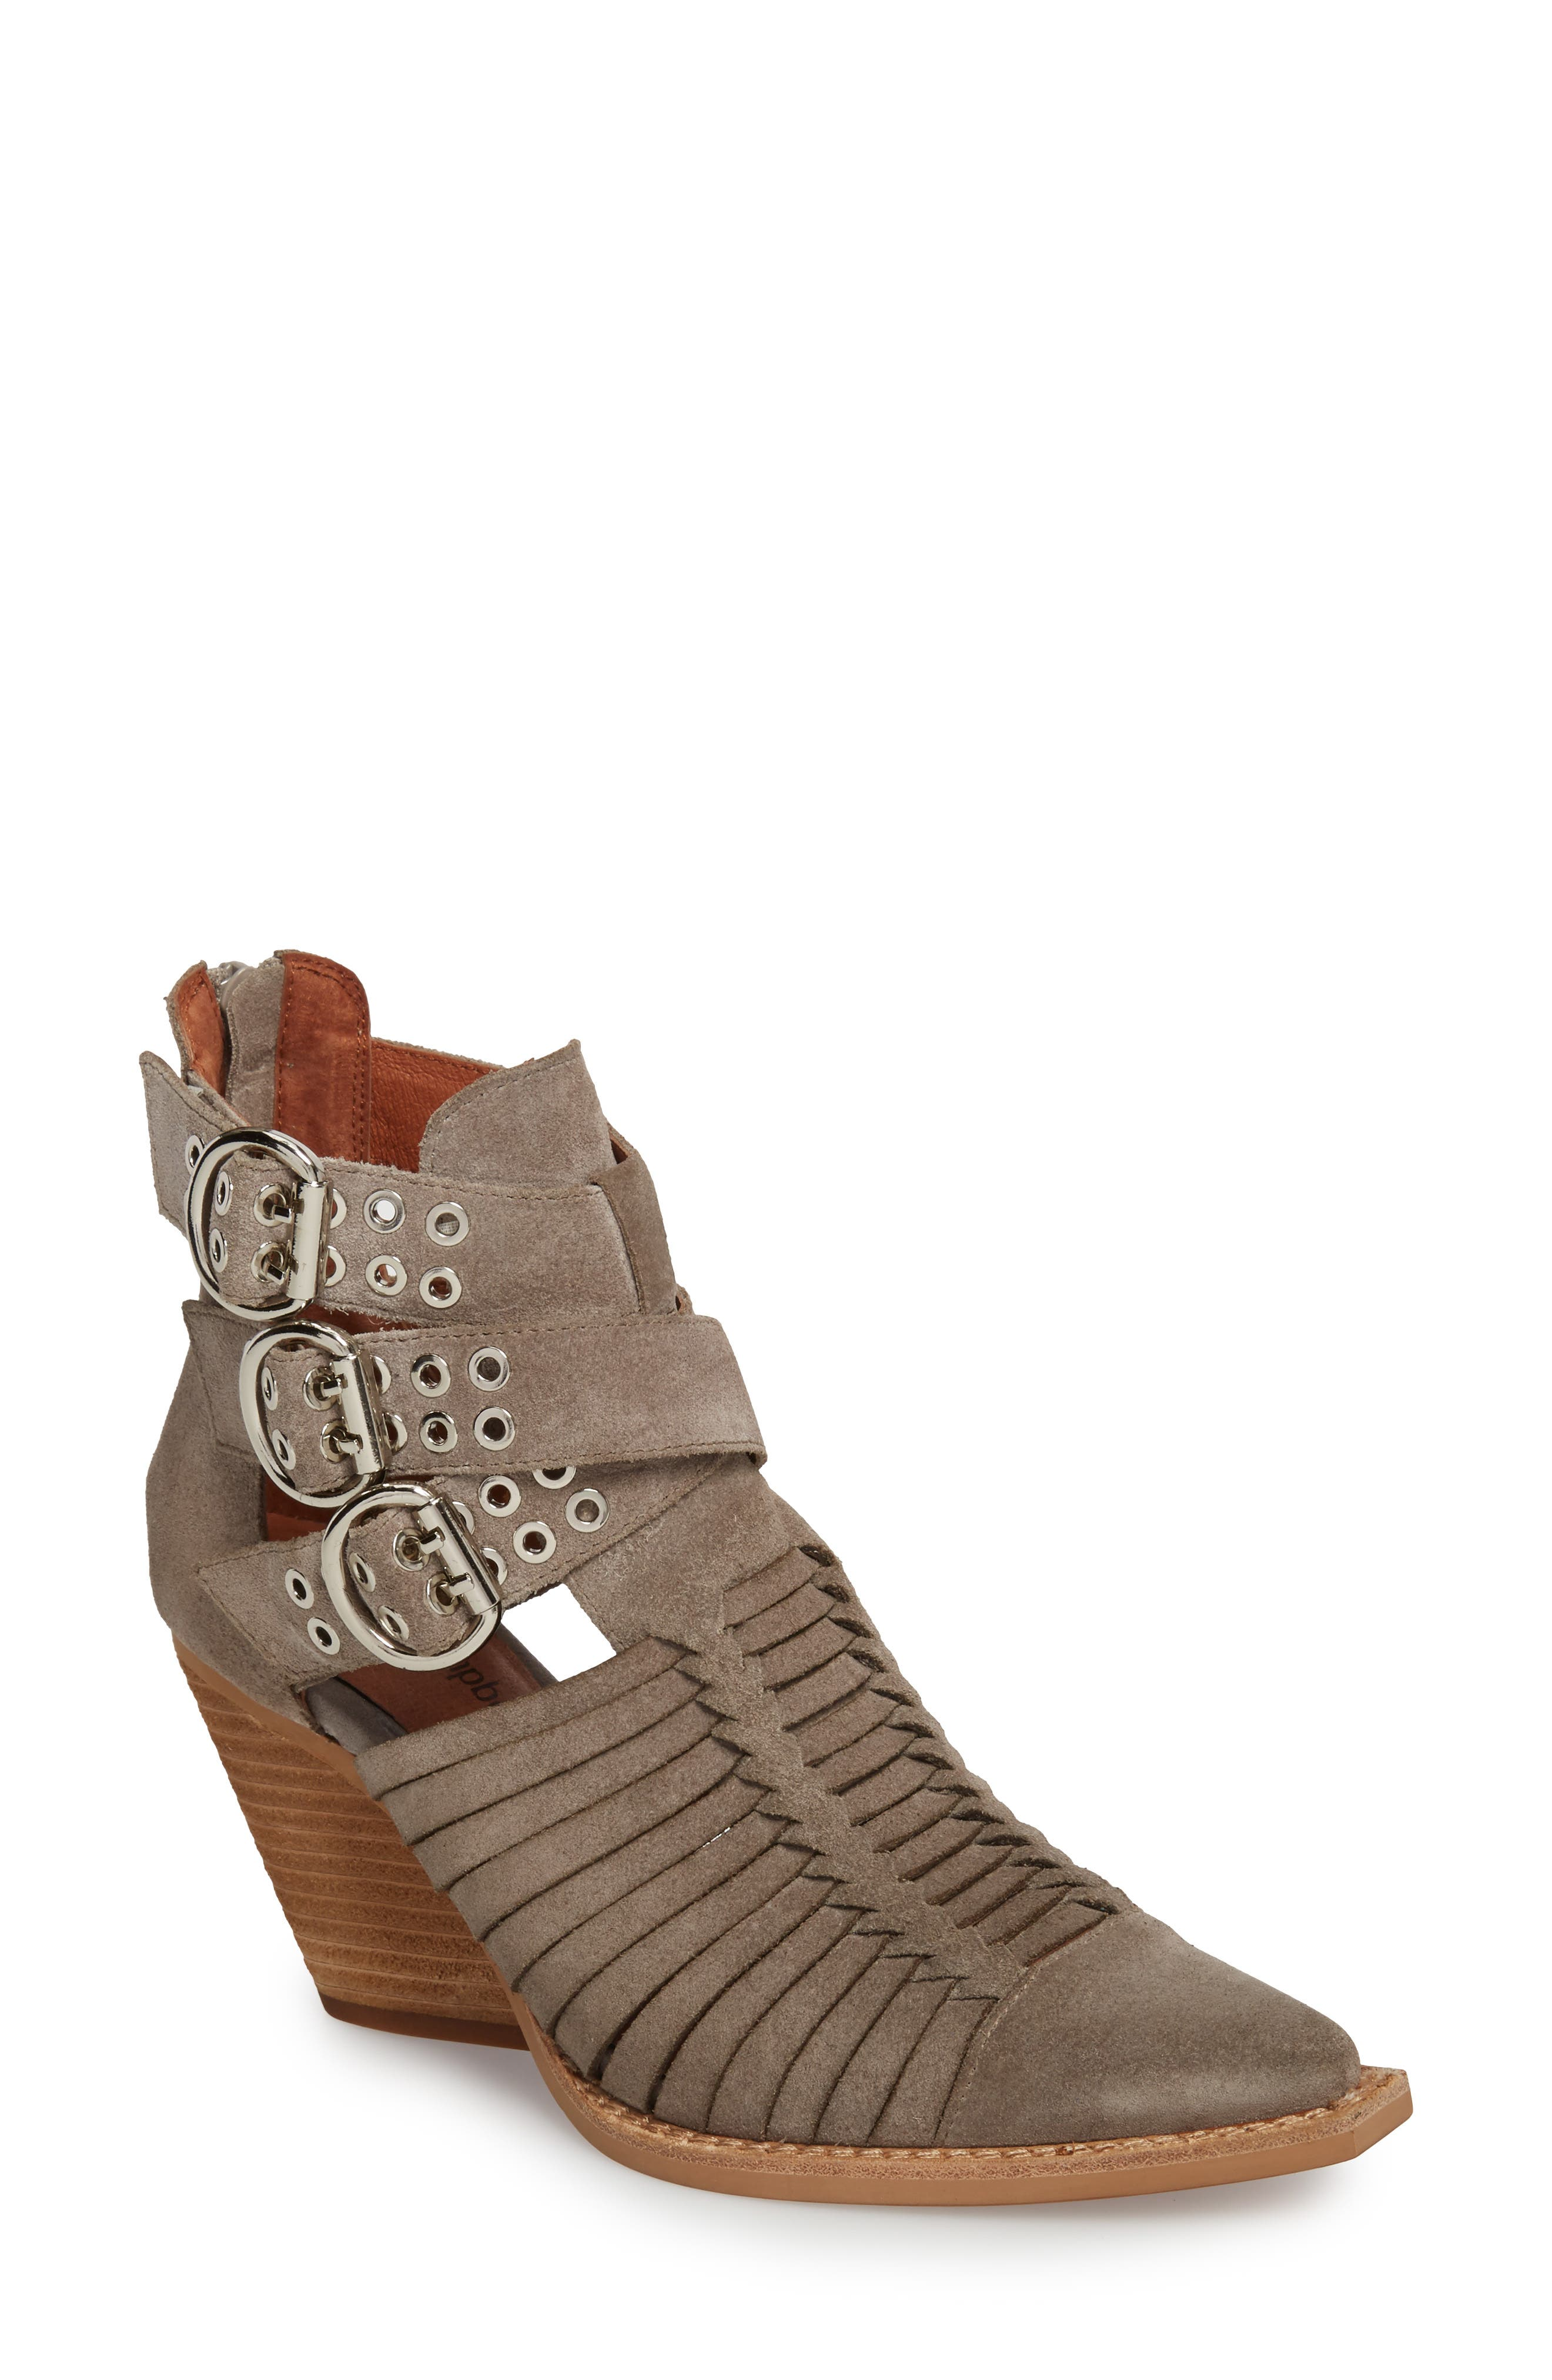 Jamison Bootie,                         Main,                         color, Taupe Oiled Suede